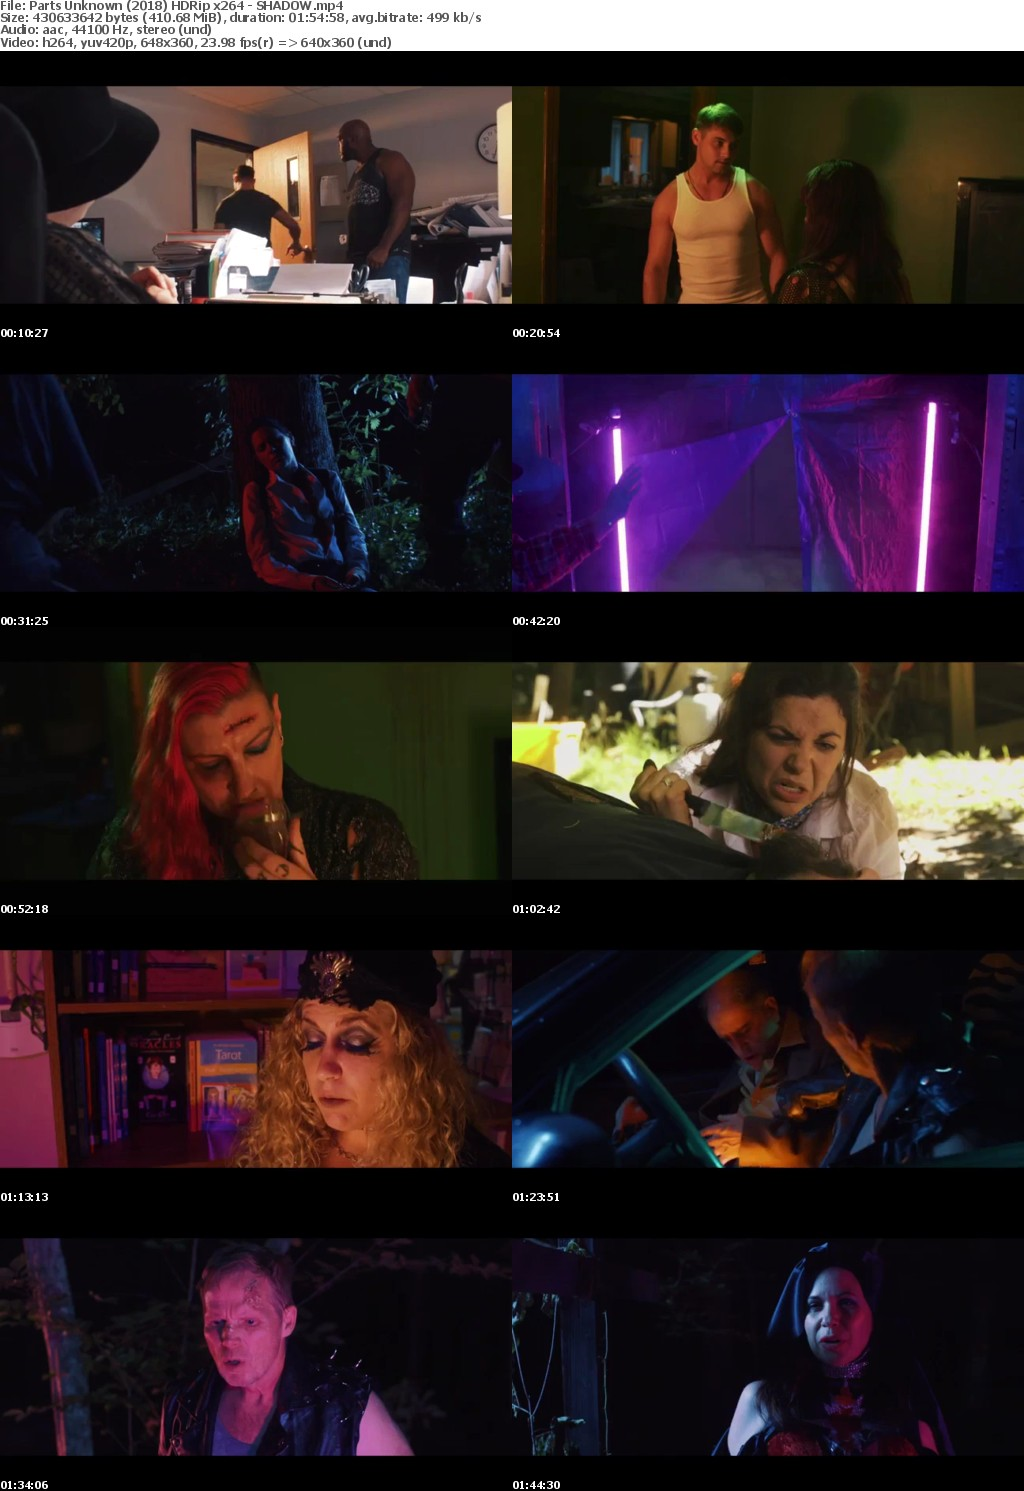 Parts Unknown (2018) HDRip x264 - SHADOW